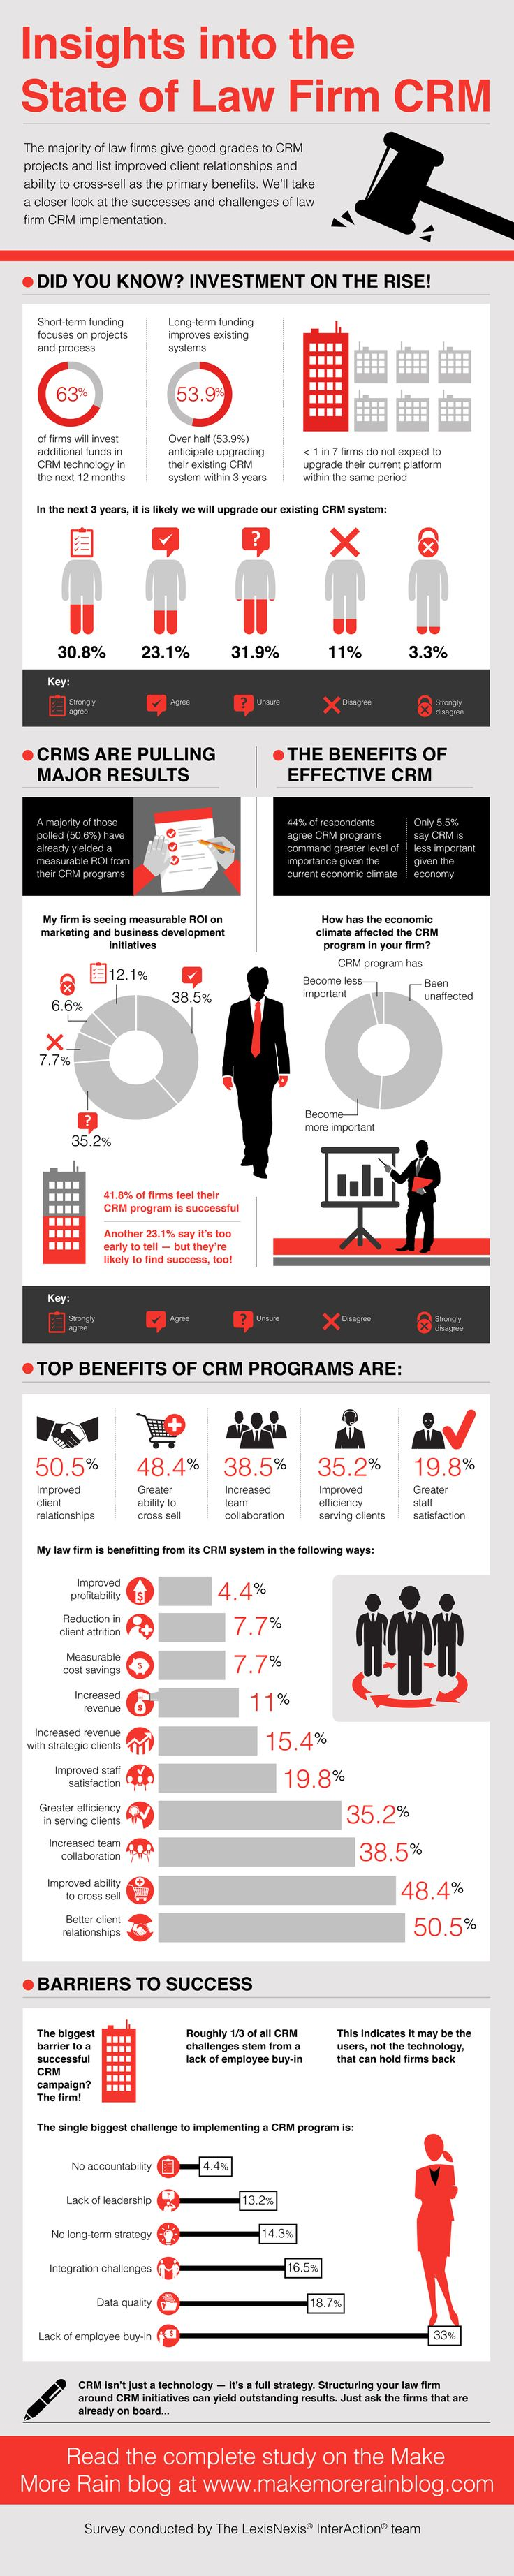 crm surveys 123 best law infographics images on pinterest info 4652